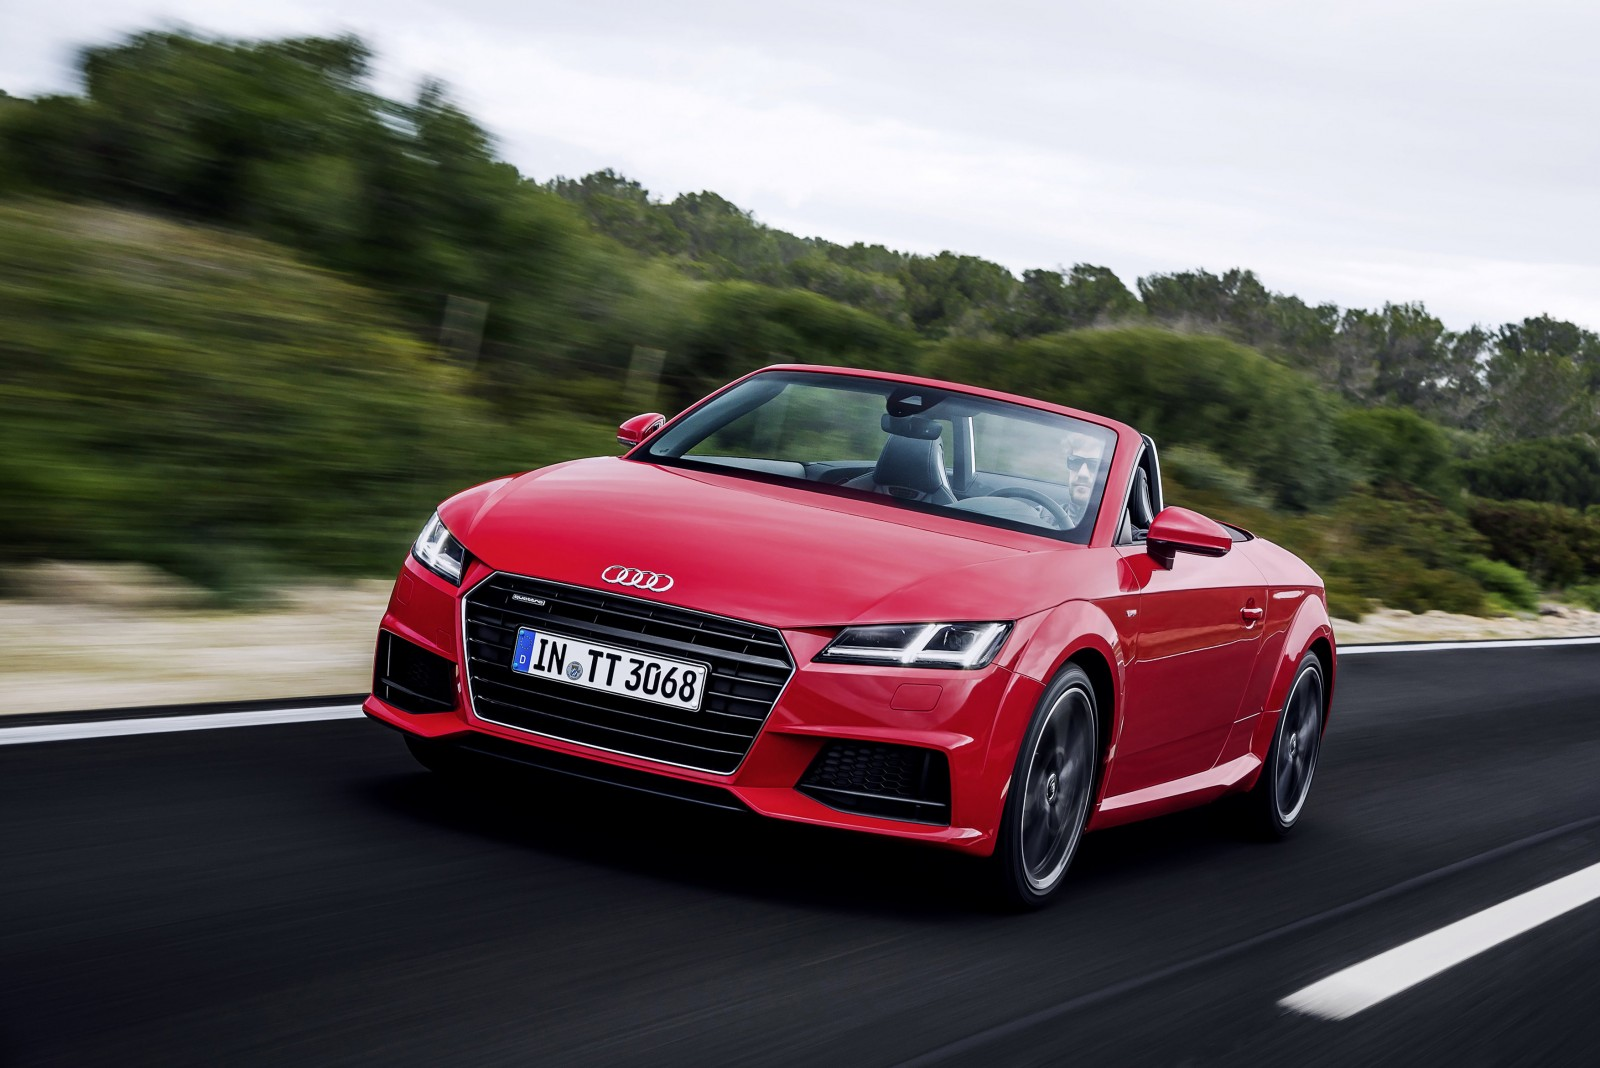 2016 Audi TT red front